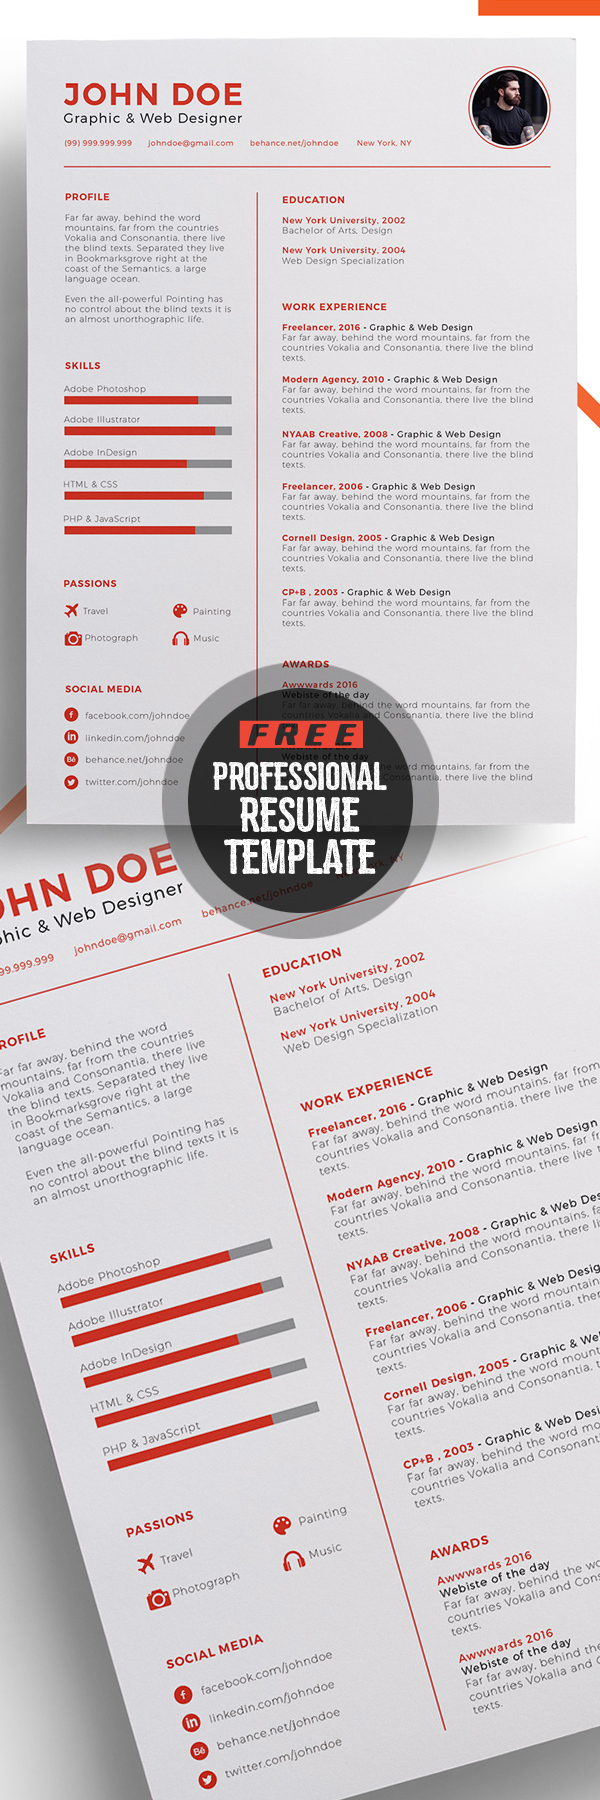 Stylish Word Photo Resume Templates Creative Professional Free